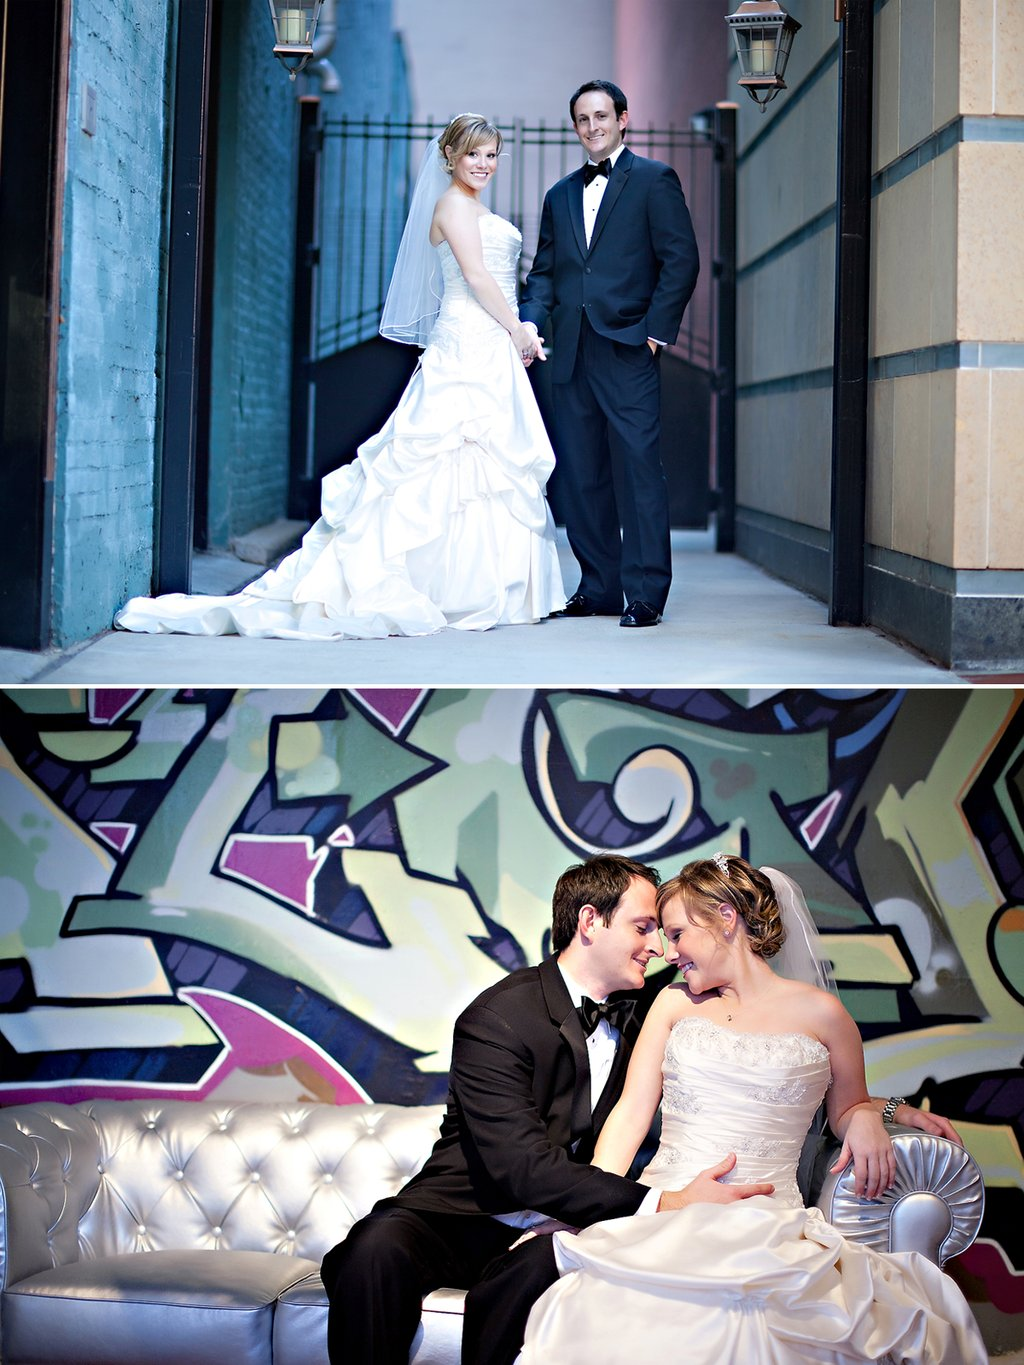 Real-weddings-new-york-downtown-wedding-venue-ivory-bridal-gown-black-tux.full